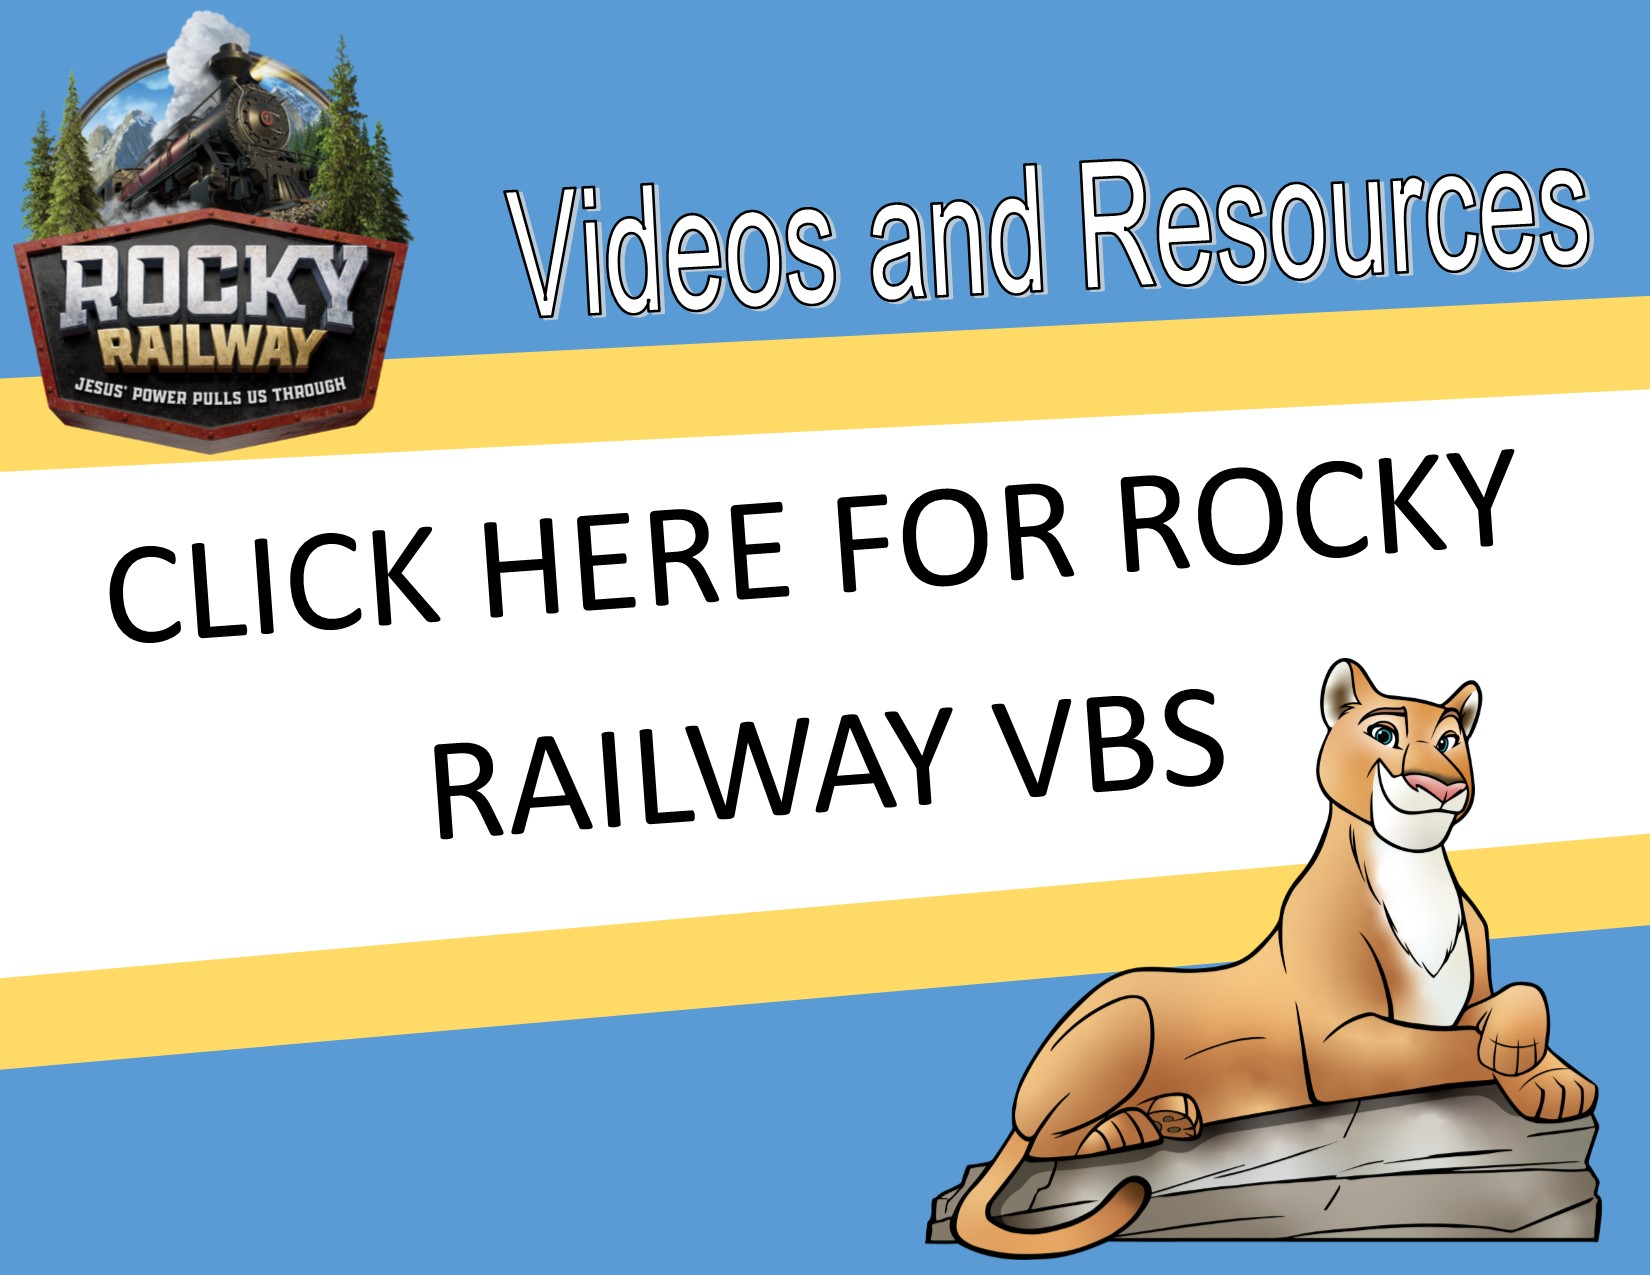 Click here for Rocky Railway VBS resources